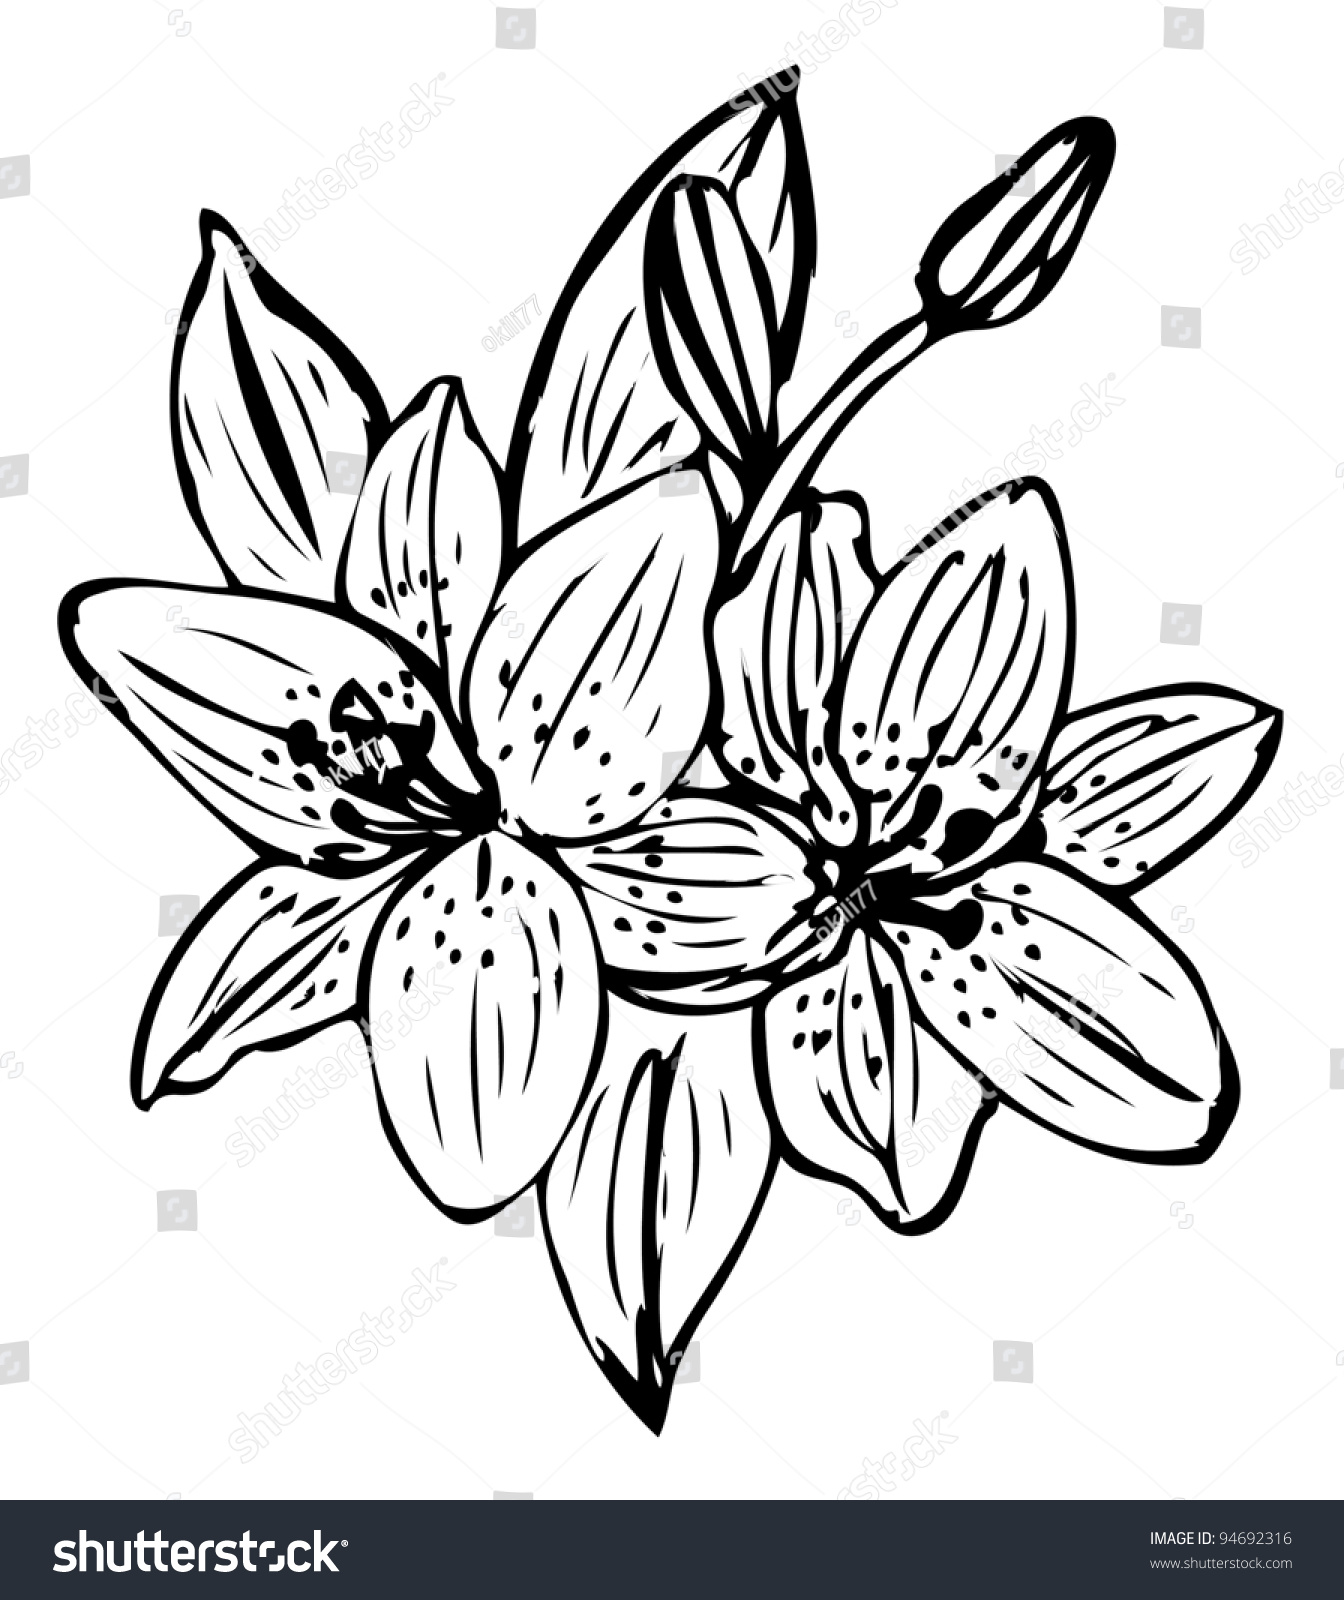 Royalty Free Lily Flower Outline Vector Isolated On 94692316 Stock